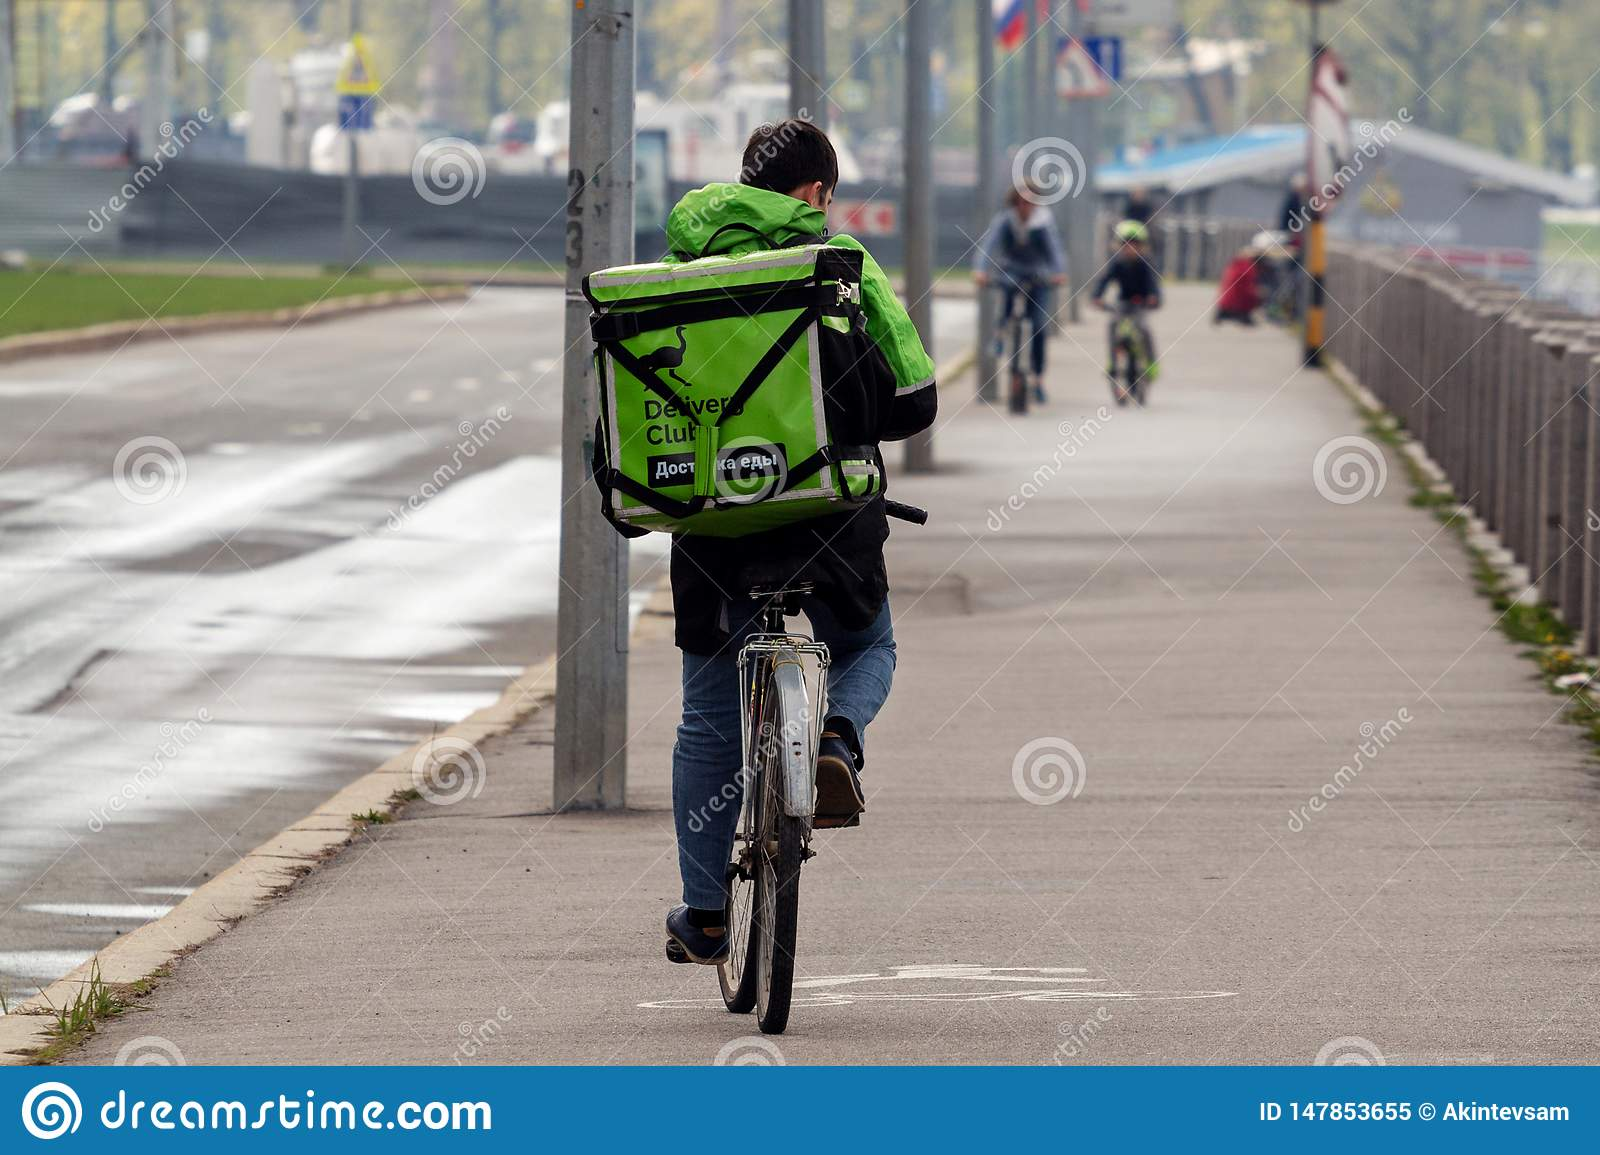 Courier of Delivery club delivers food on a bicycle